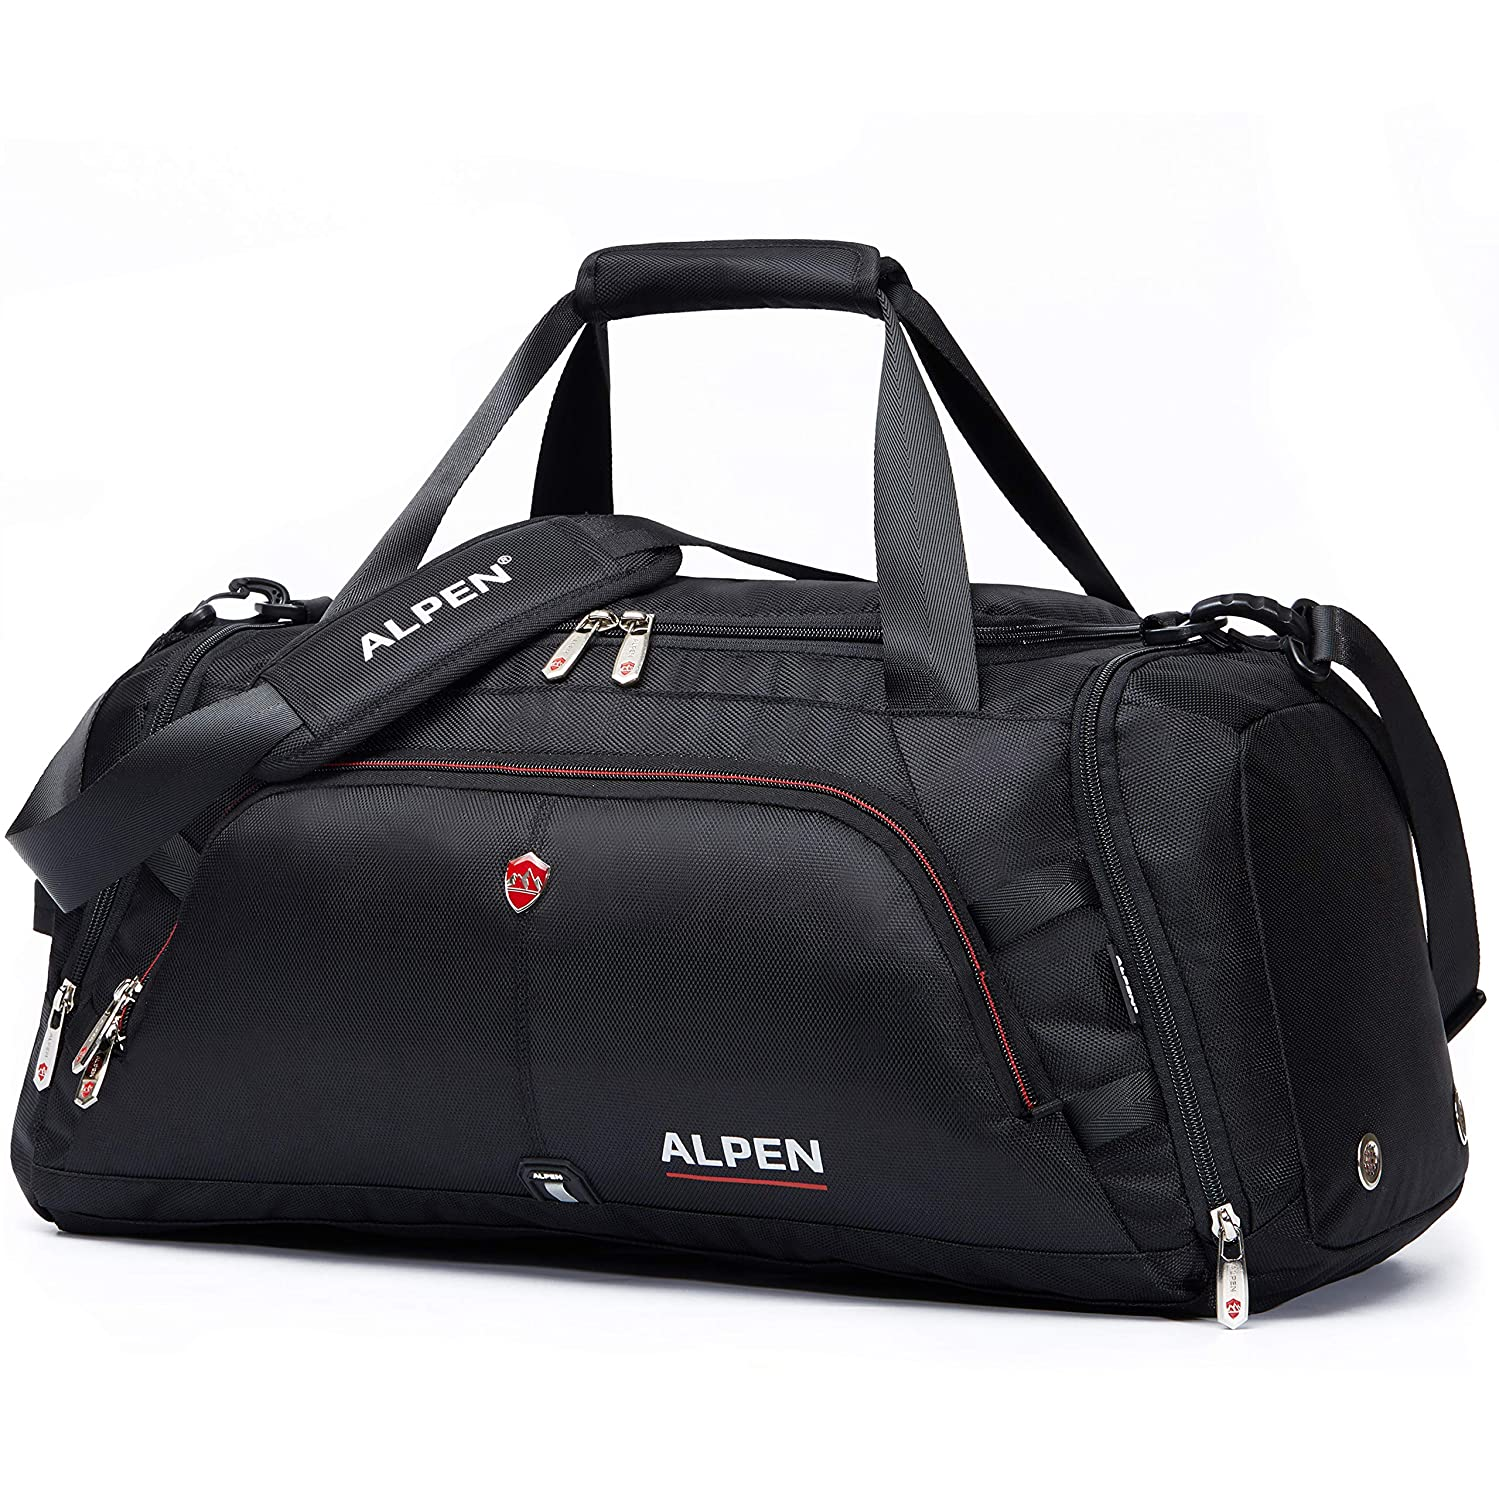 Swiss Alpen – Cervino Duffel – Water Resistant Durable 1680D Carry On Travel Duffel Bag Gym Sports Bag with Shoes Compartment – 10.5 Gallons – 40 Liters – Black Exclusive